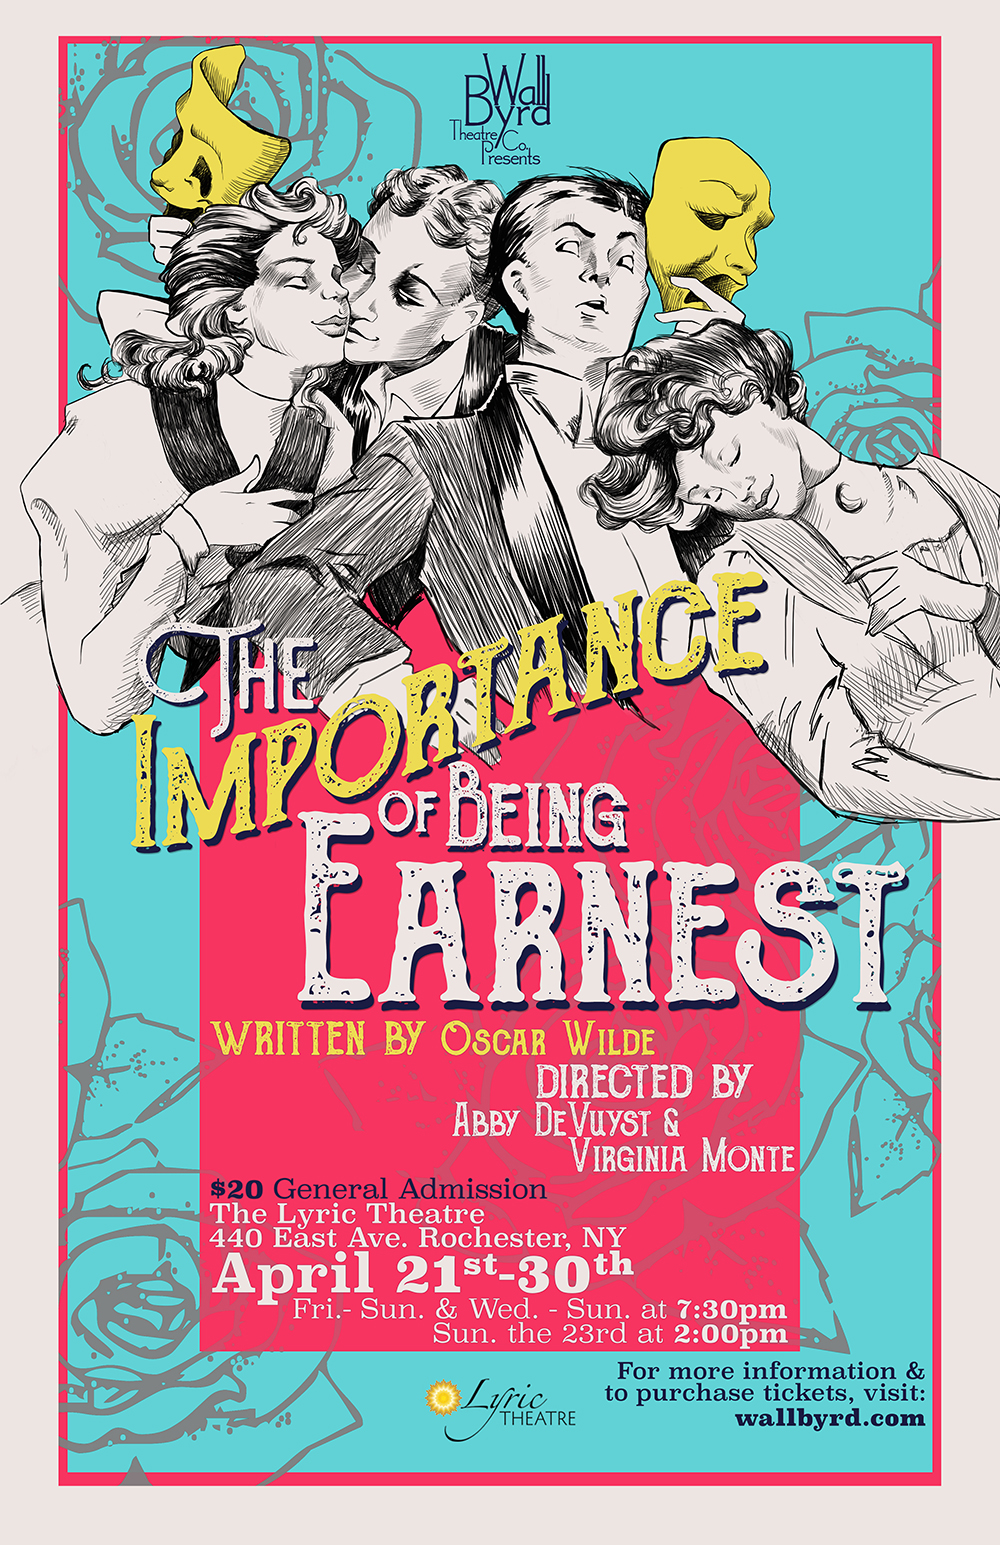 The Importance of being earnest poster.jpg